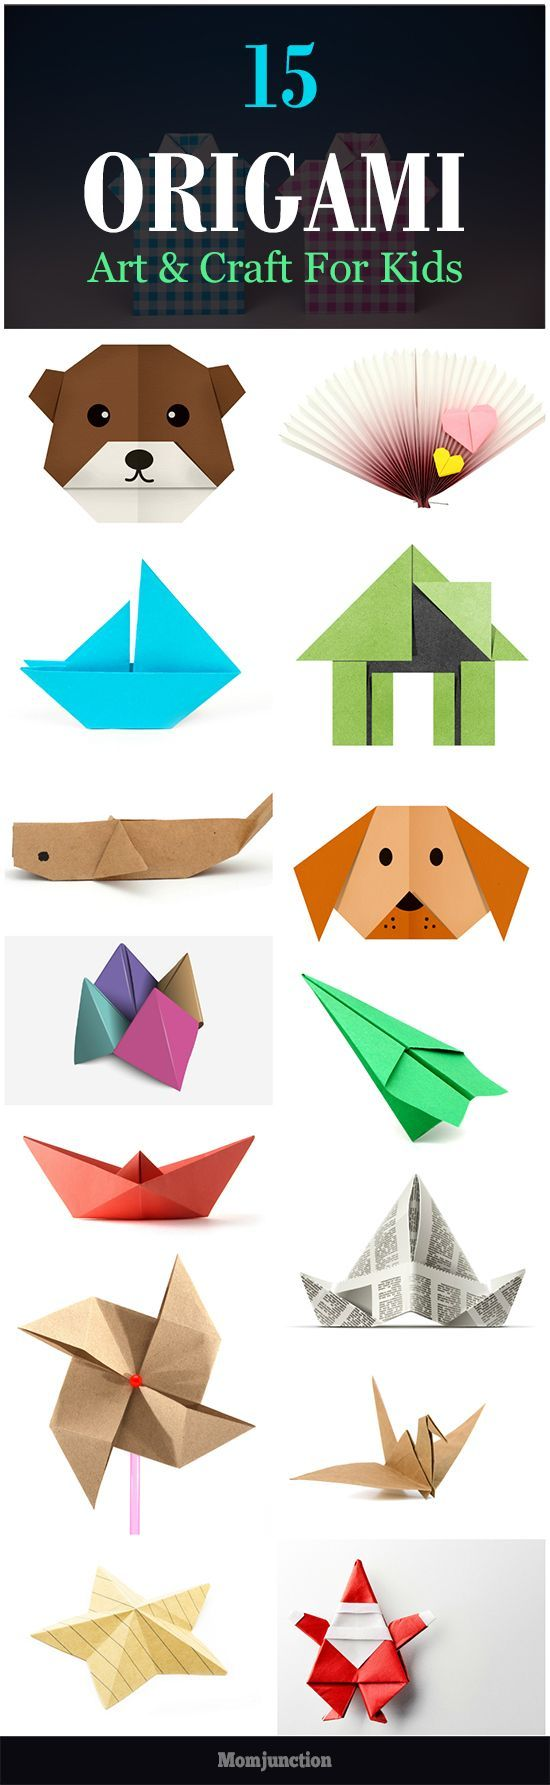 Top 15 Paper Folding Or Origami Art & Craft For Kids: Your kid can enjoy this craft activity without the extensive use of glue and scissors. Here are top 15 origami art for your little creative genius.: